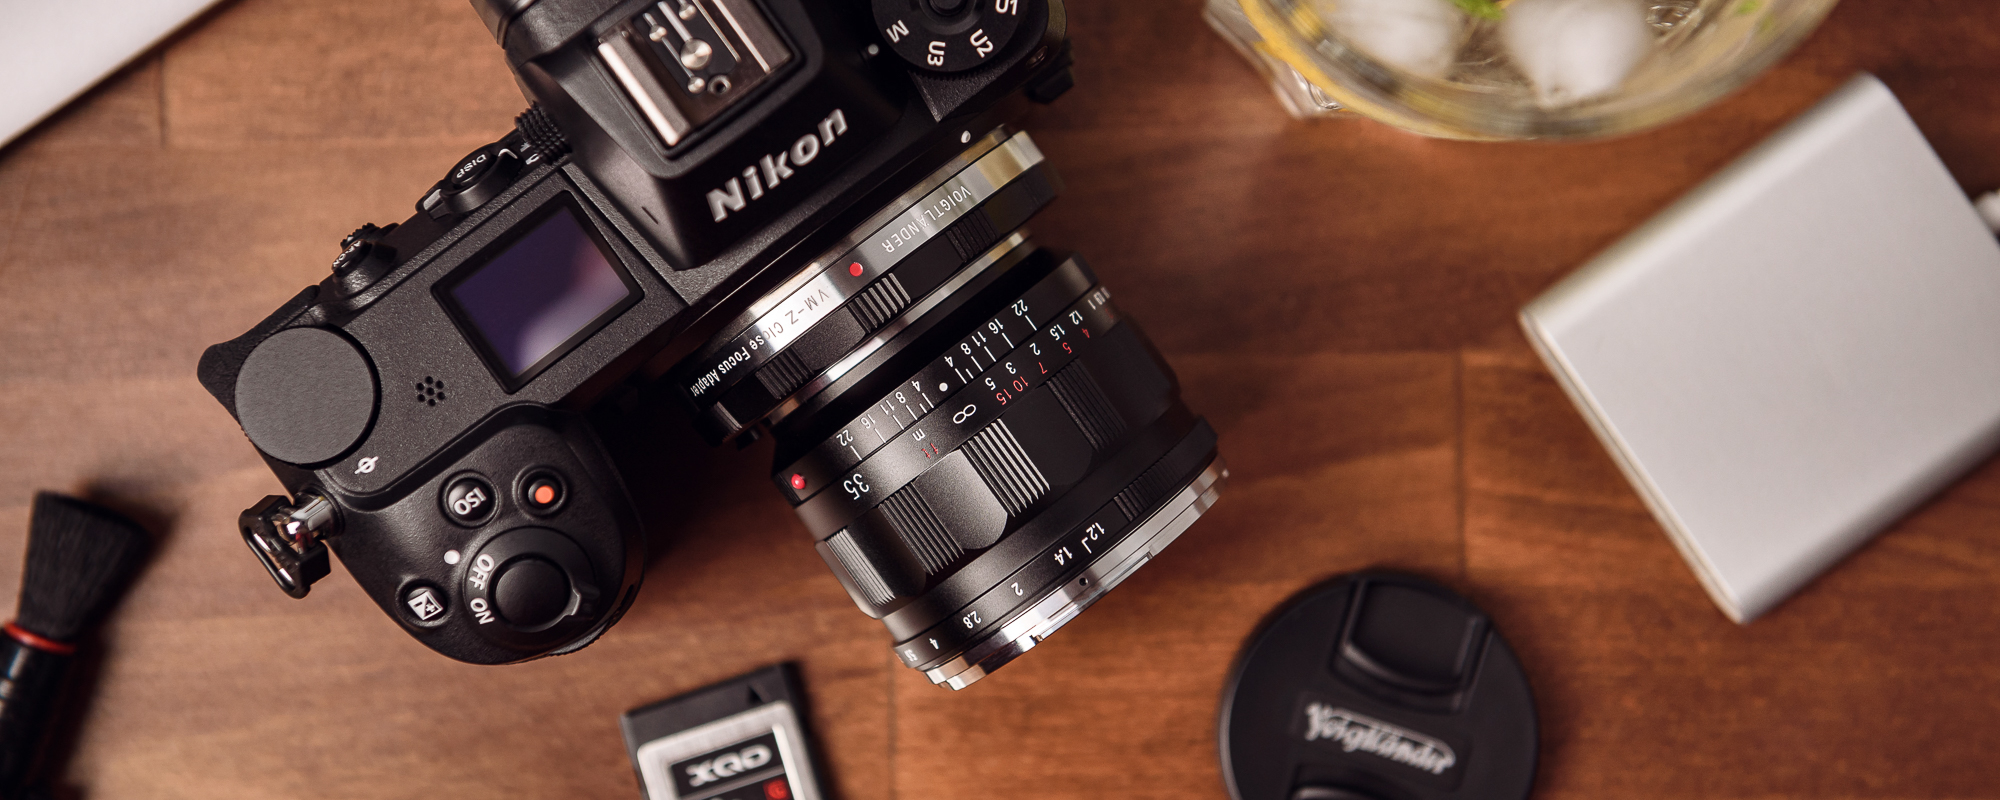 Voigtlander Nokton III 35 mm f/1.2 lens for Leica M on wooden desk attached to Nikon Z6 with adapter